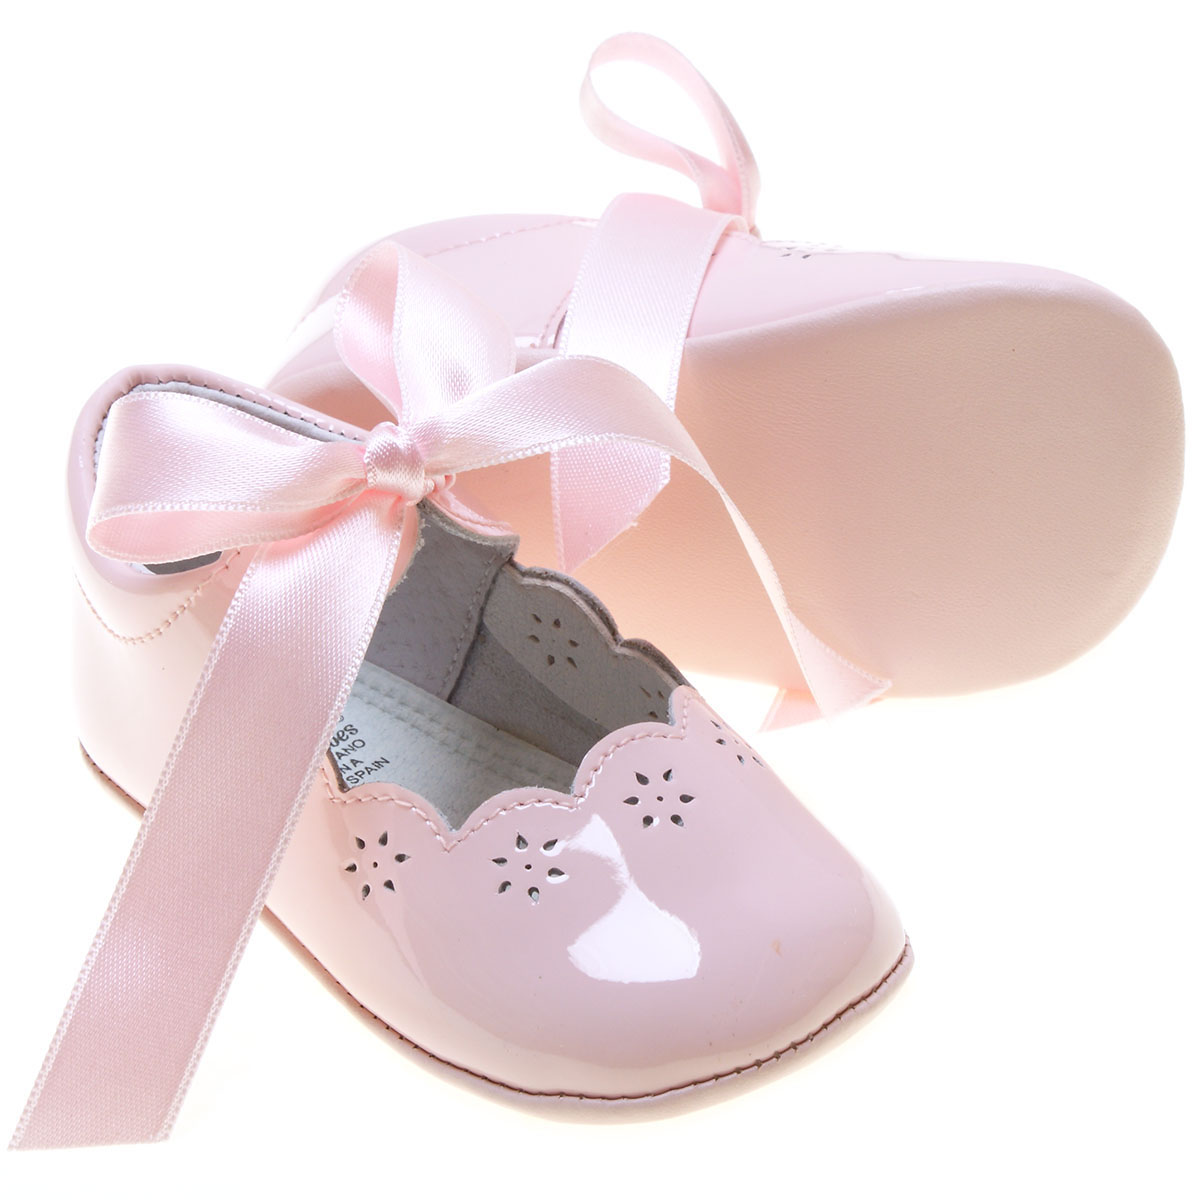 Spanish Baby Girls Pink Patent Leather Shoes Ribbons